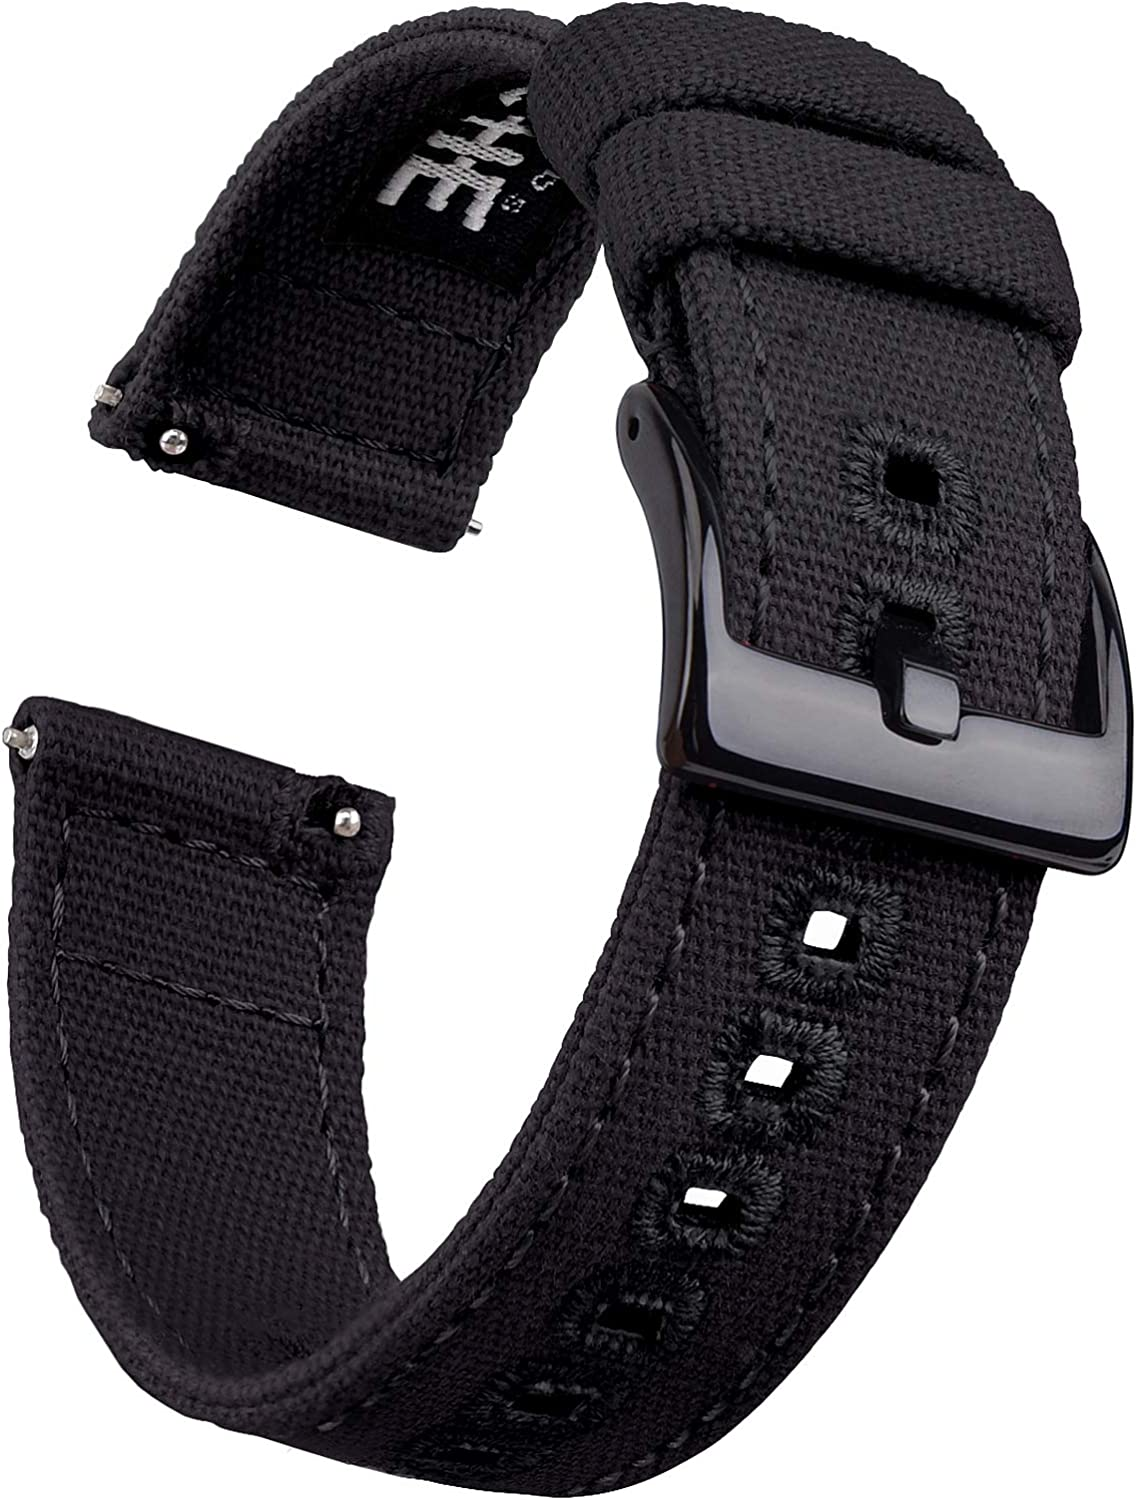 Ritche Canvas Quick Release Watch Band 18mm 20mm 22mm Replacement Watch Straps for Men Women